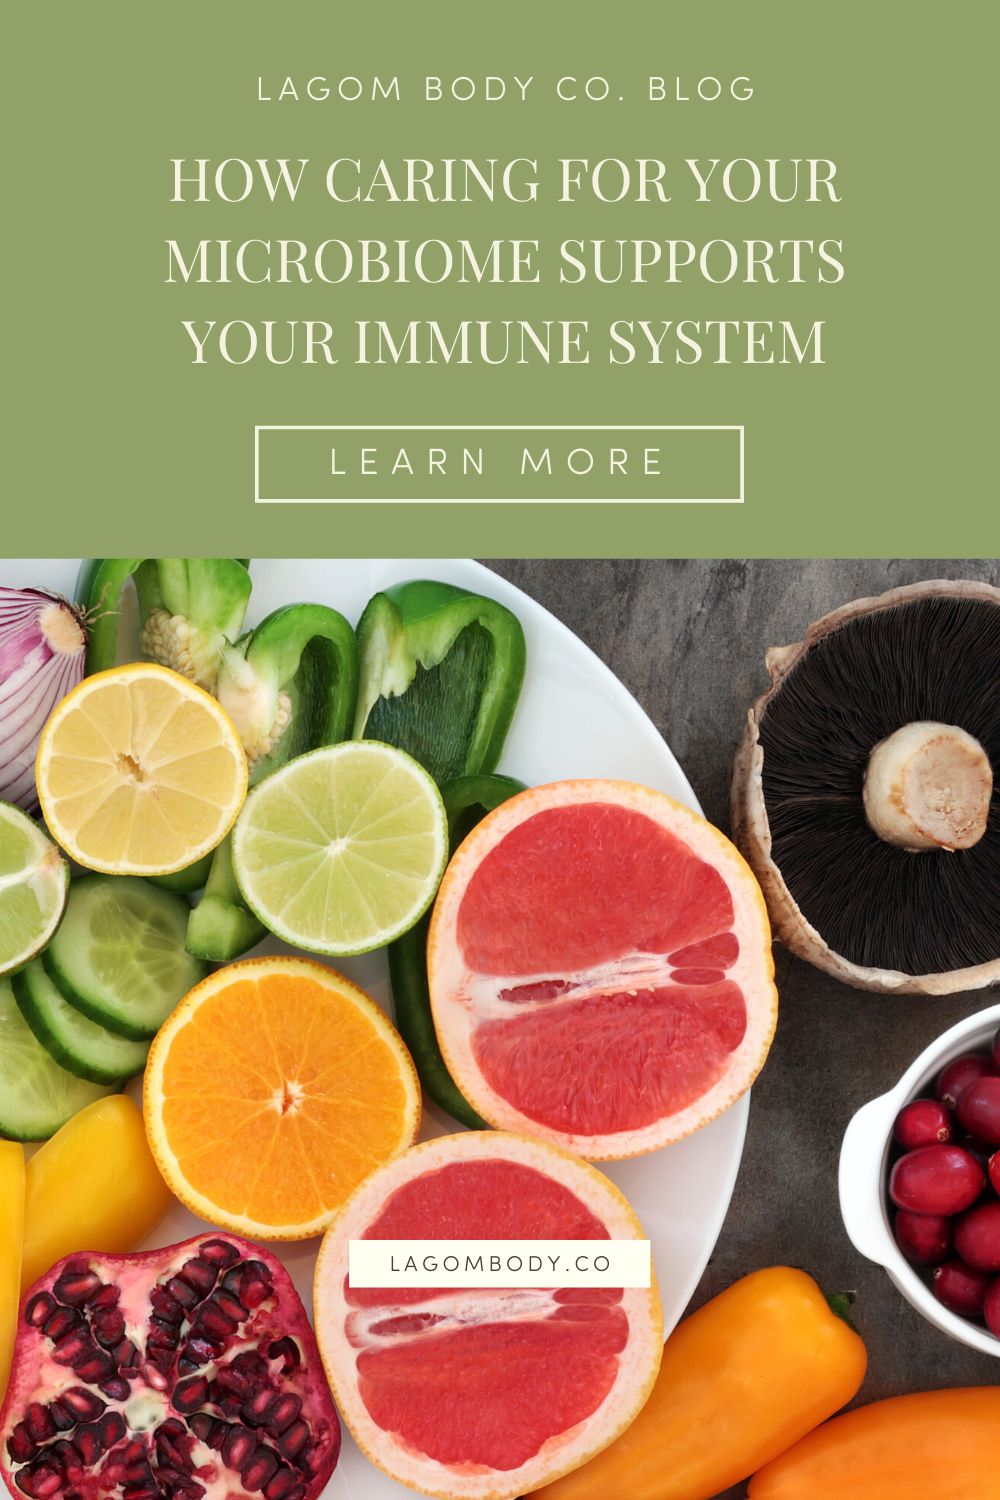 How Caring For Your Microbiome Supports Your Immune System Pinterest Promo Image